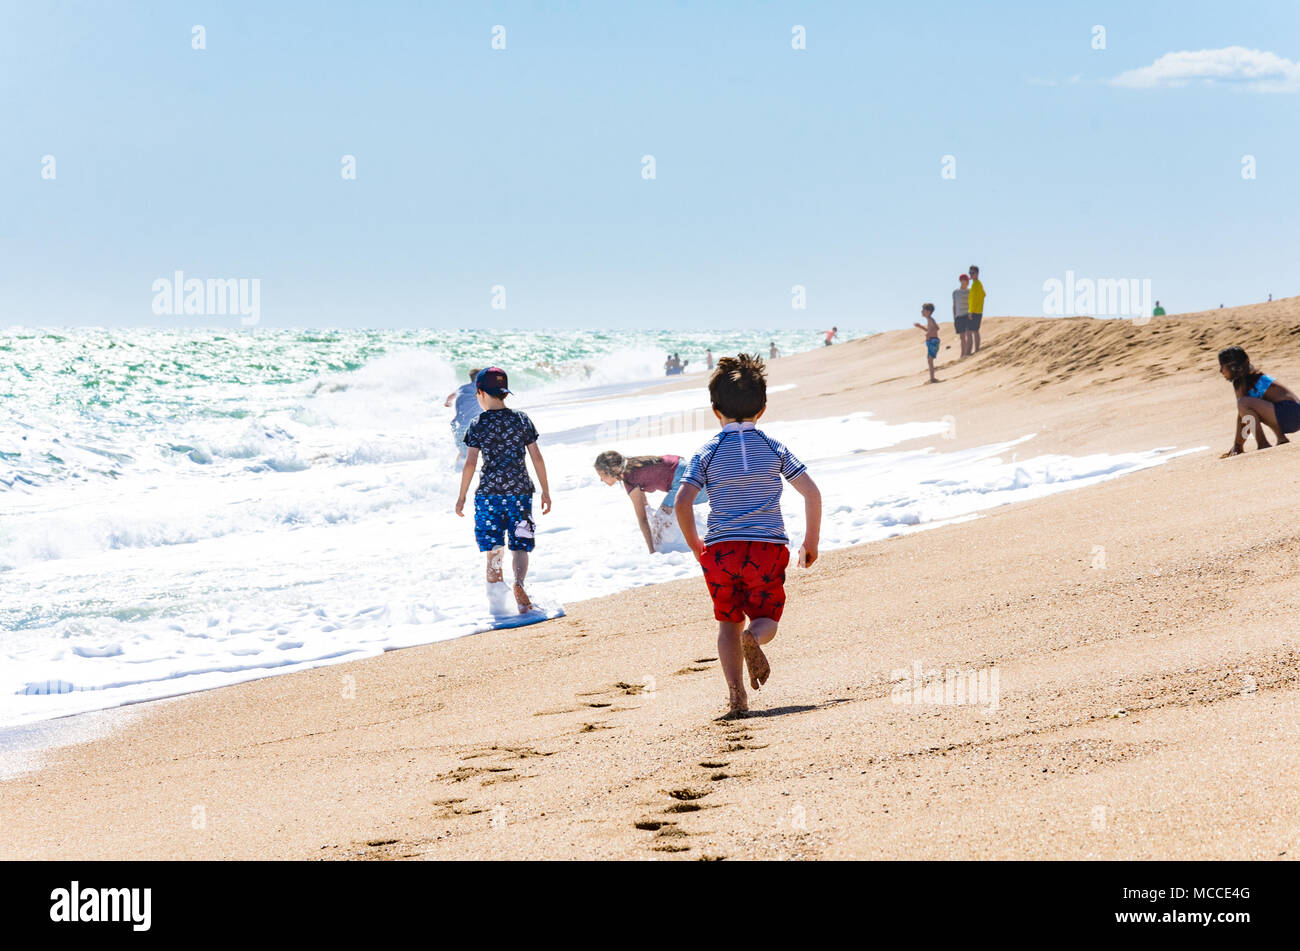 a-young-boy-runs-along-a-beach-close-to-the-waters-edge-where-the-waves-roll-in-on-the-sand-MCCE4G.jpg